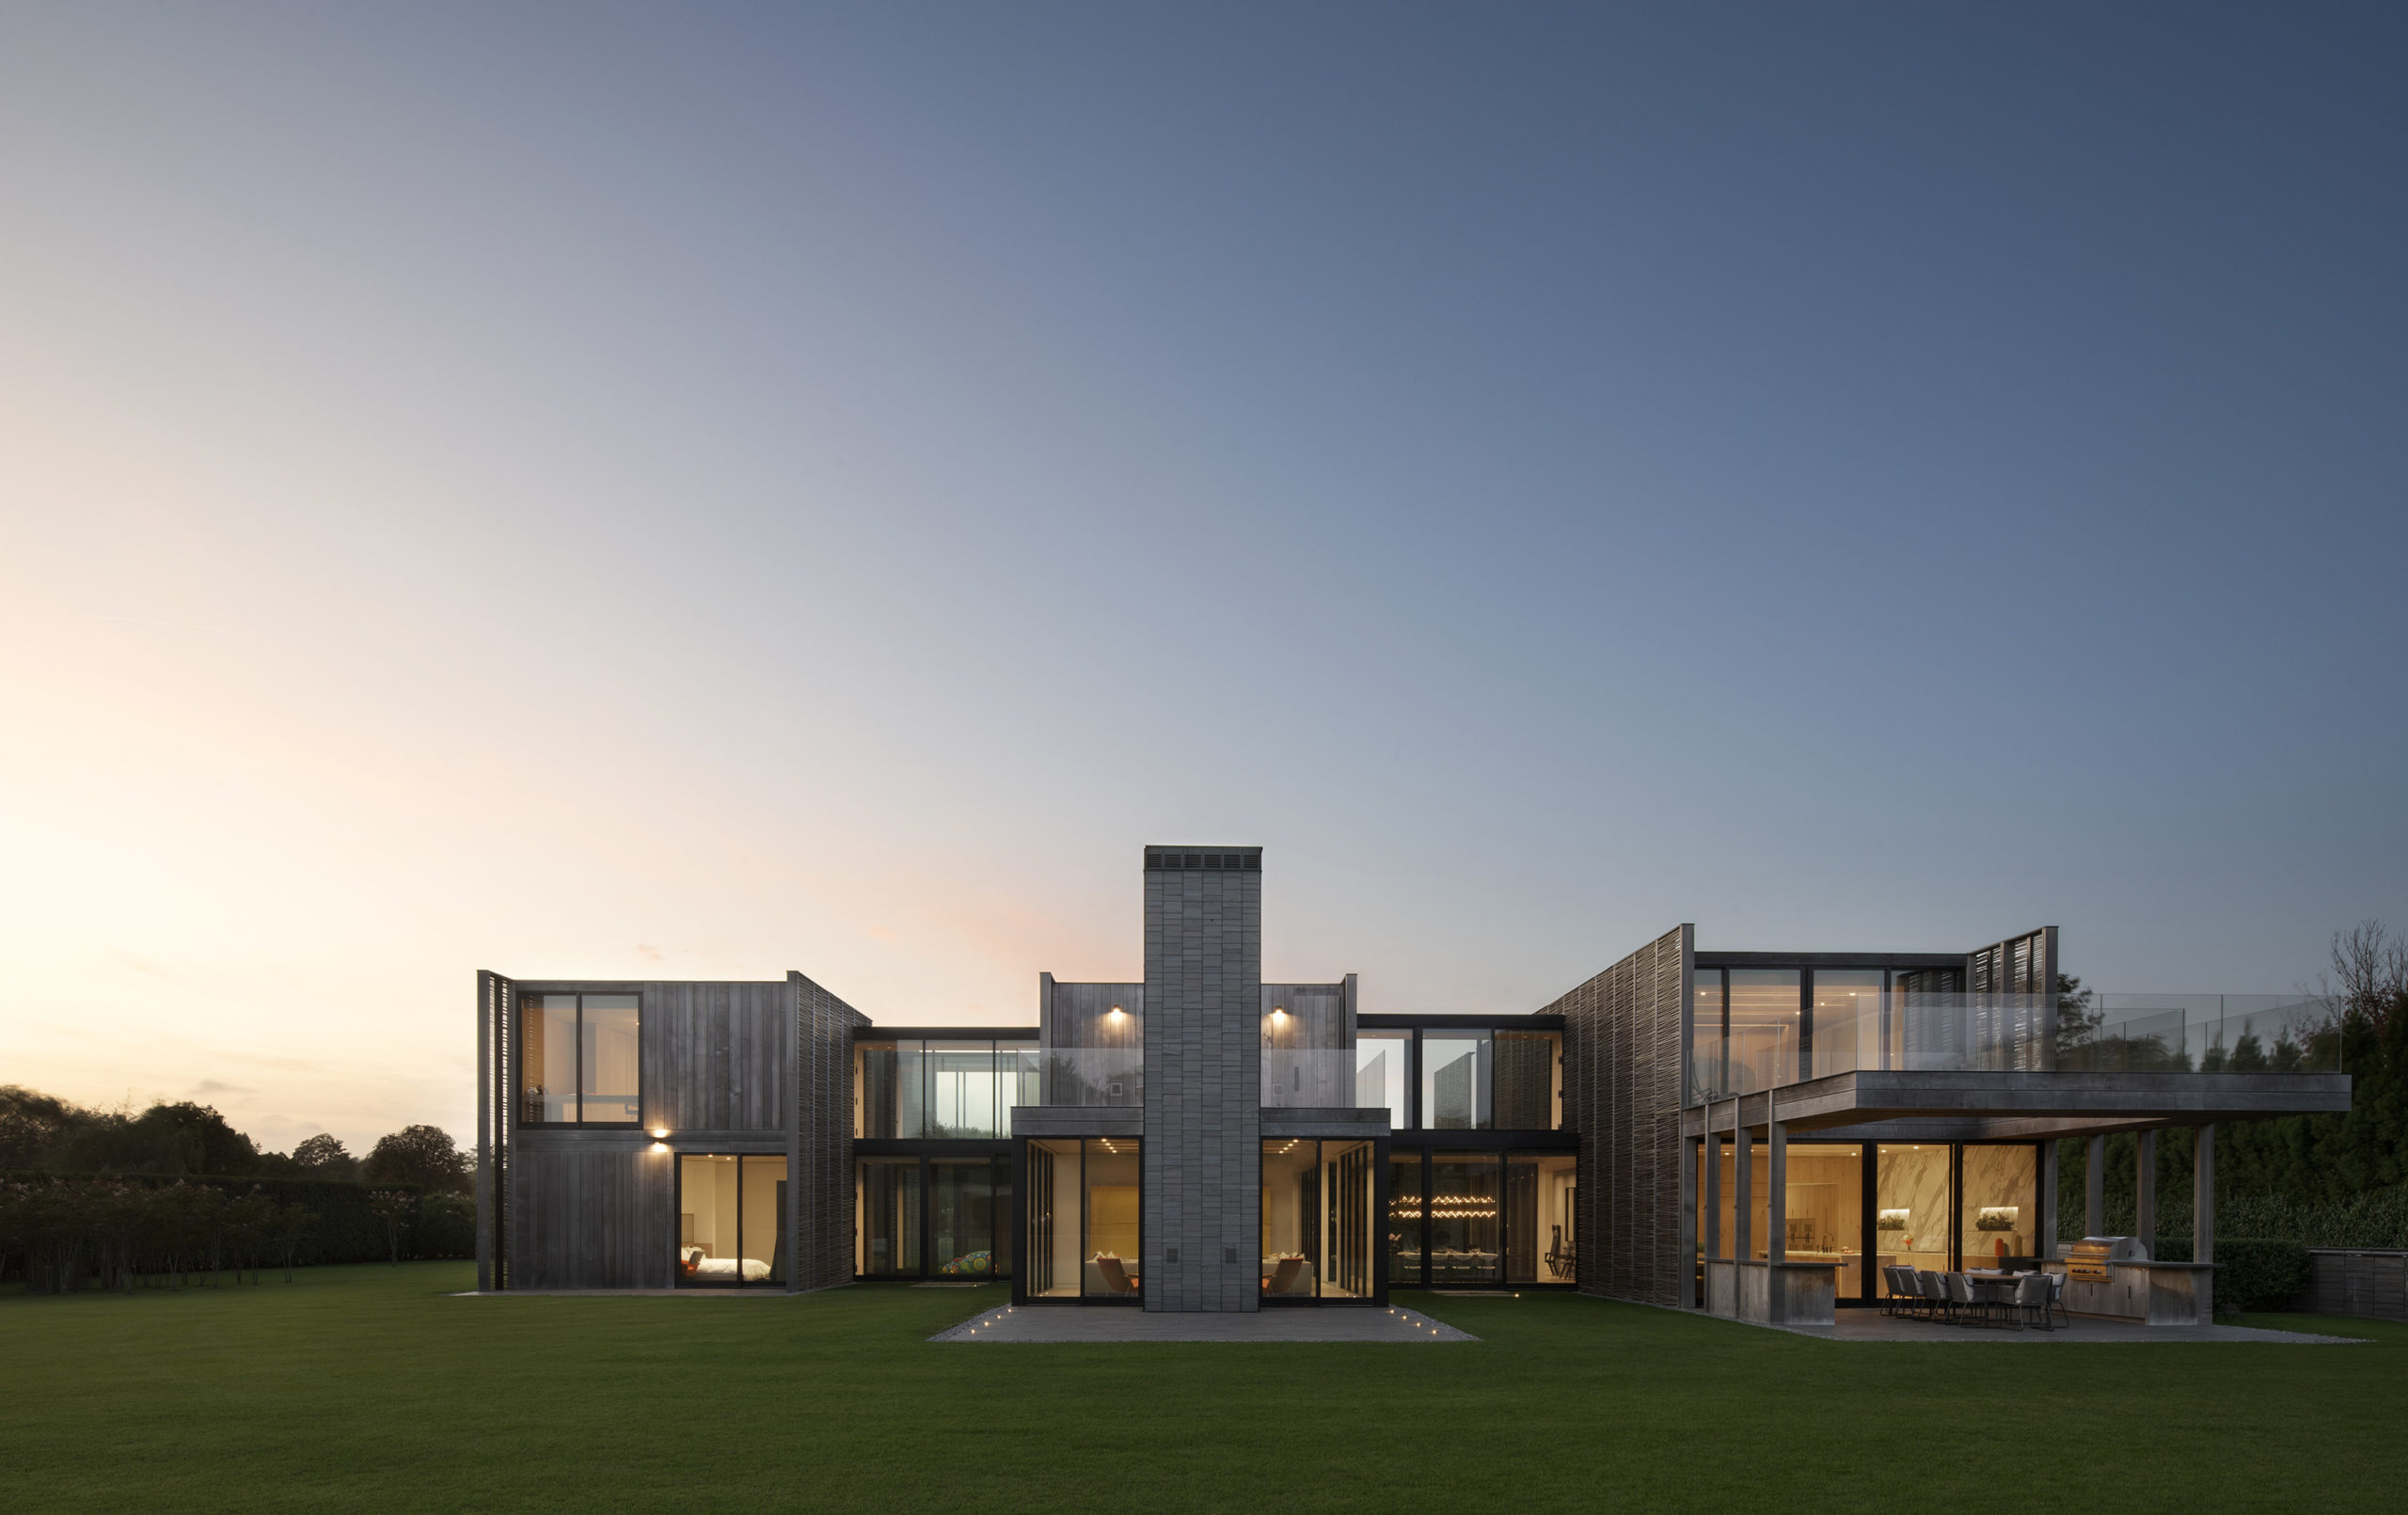 Sagg Farm in Sagaponack by Bates Masi + Architects won an Honor Award for architecture.